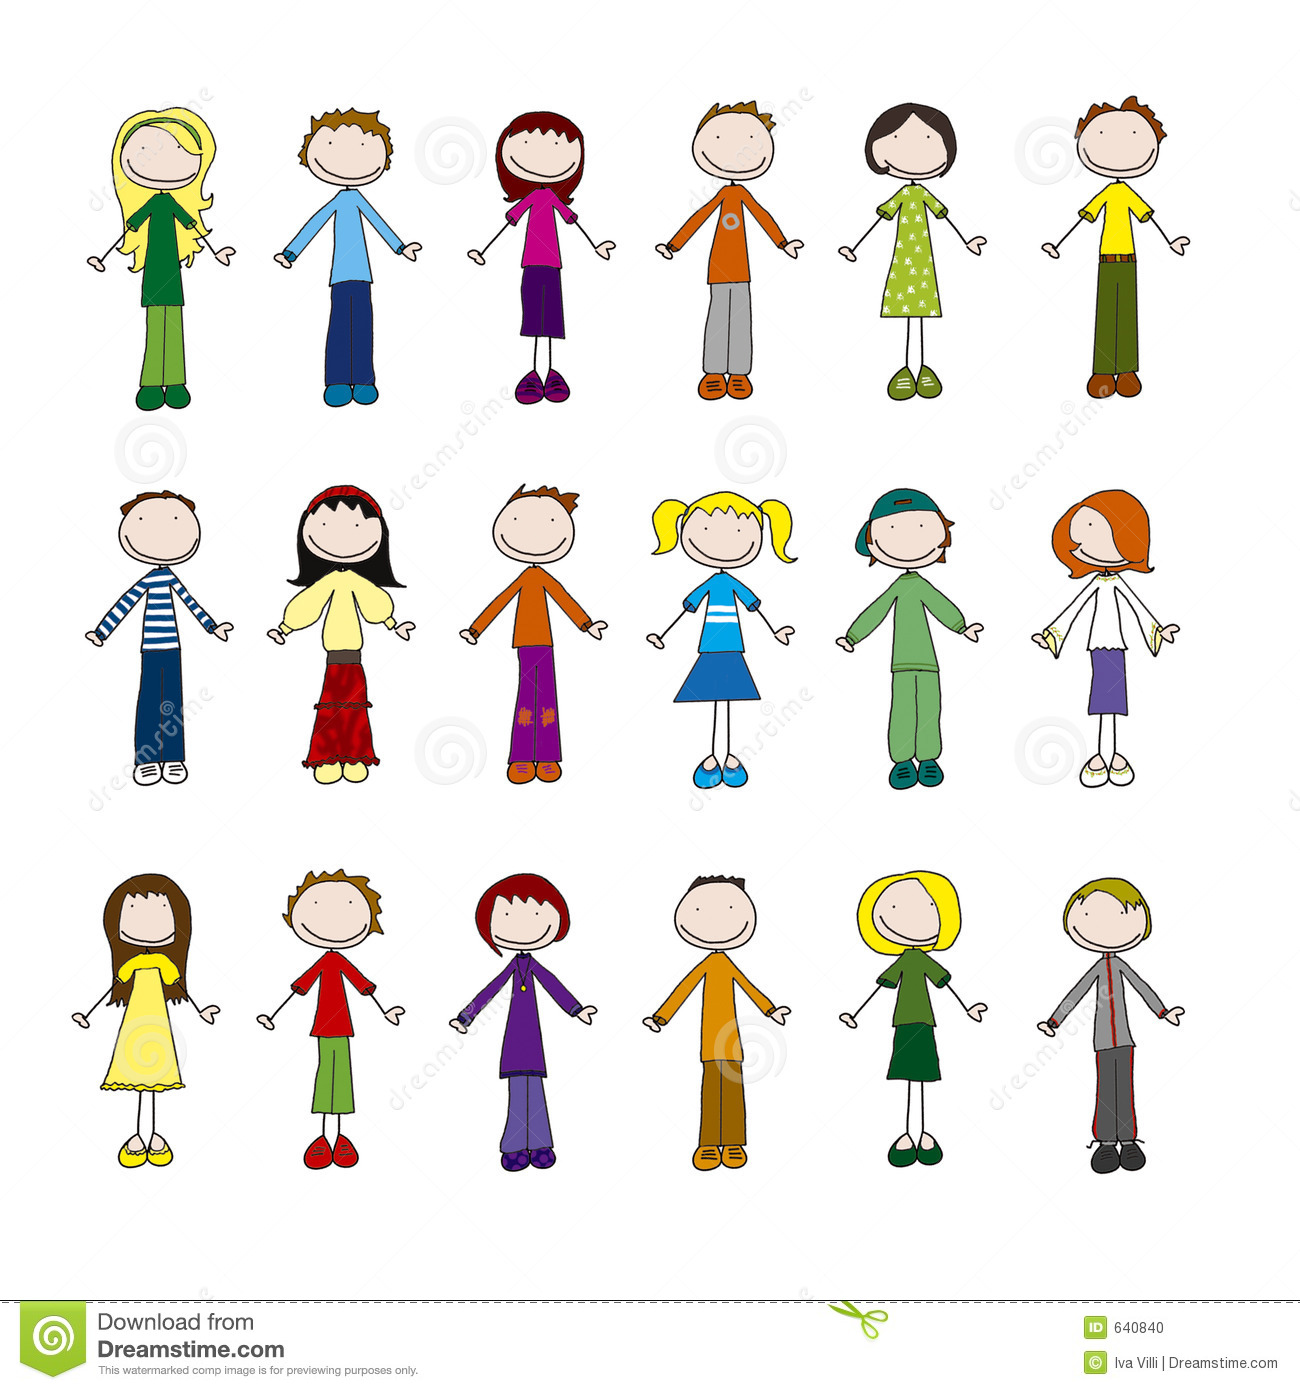 People Being Nice Clipart - Clipart Kid